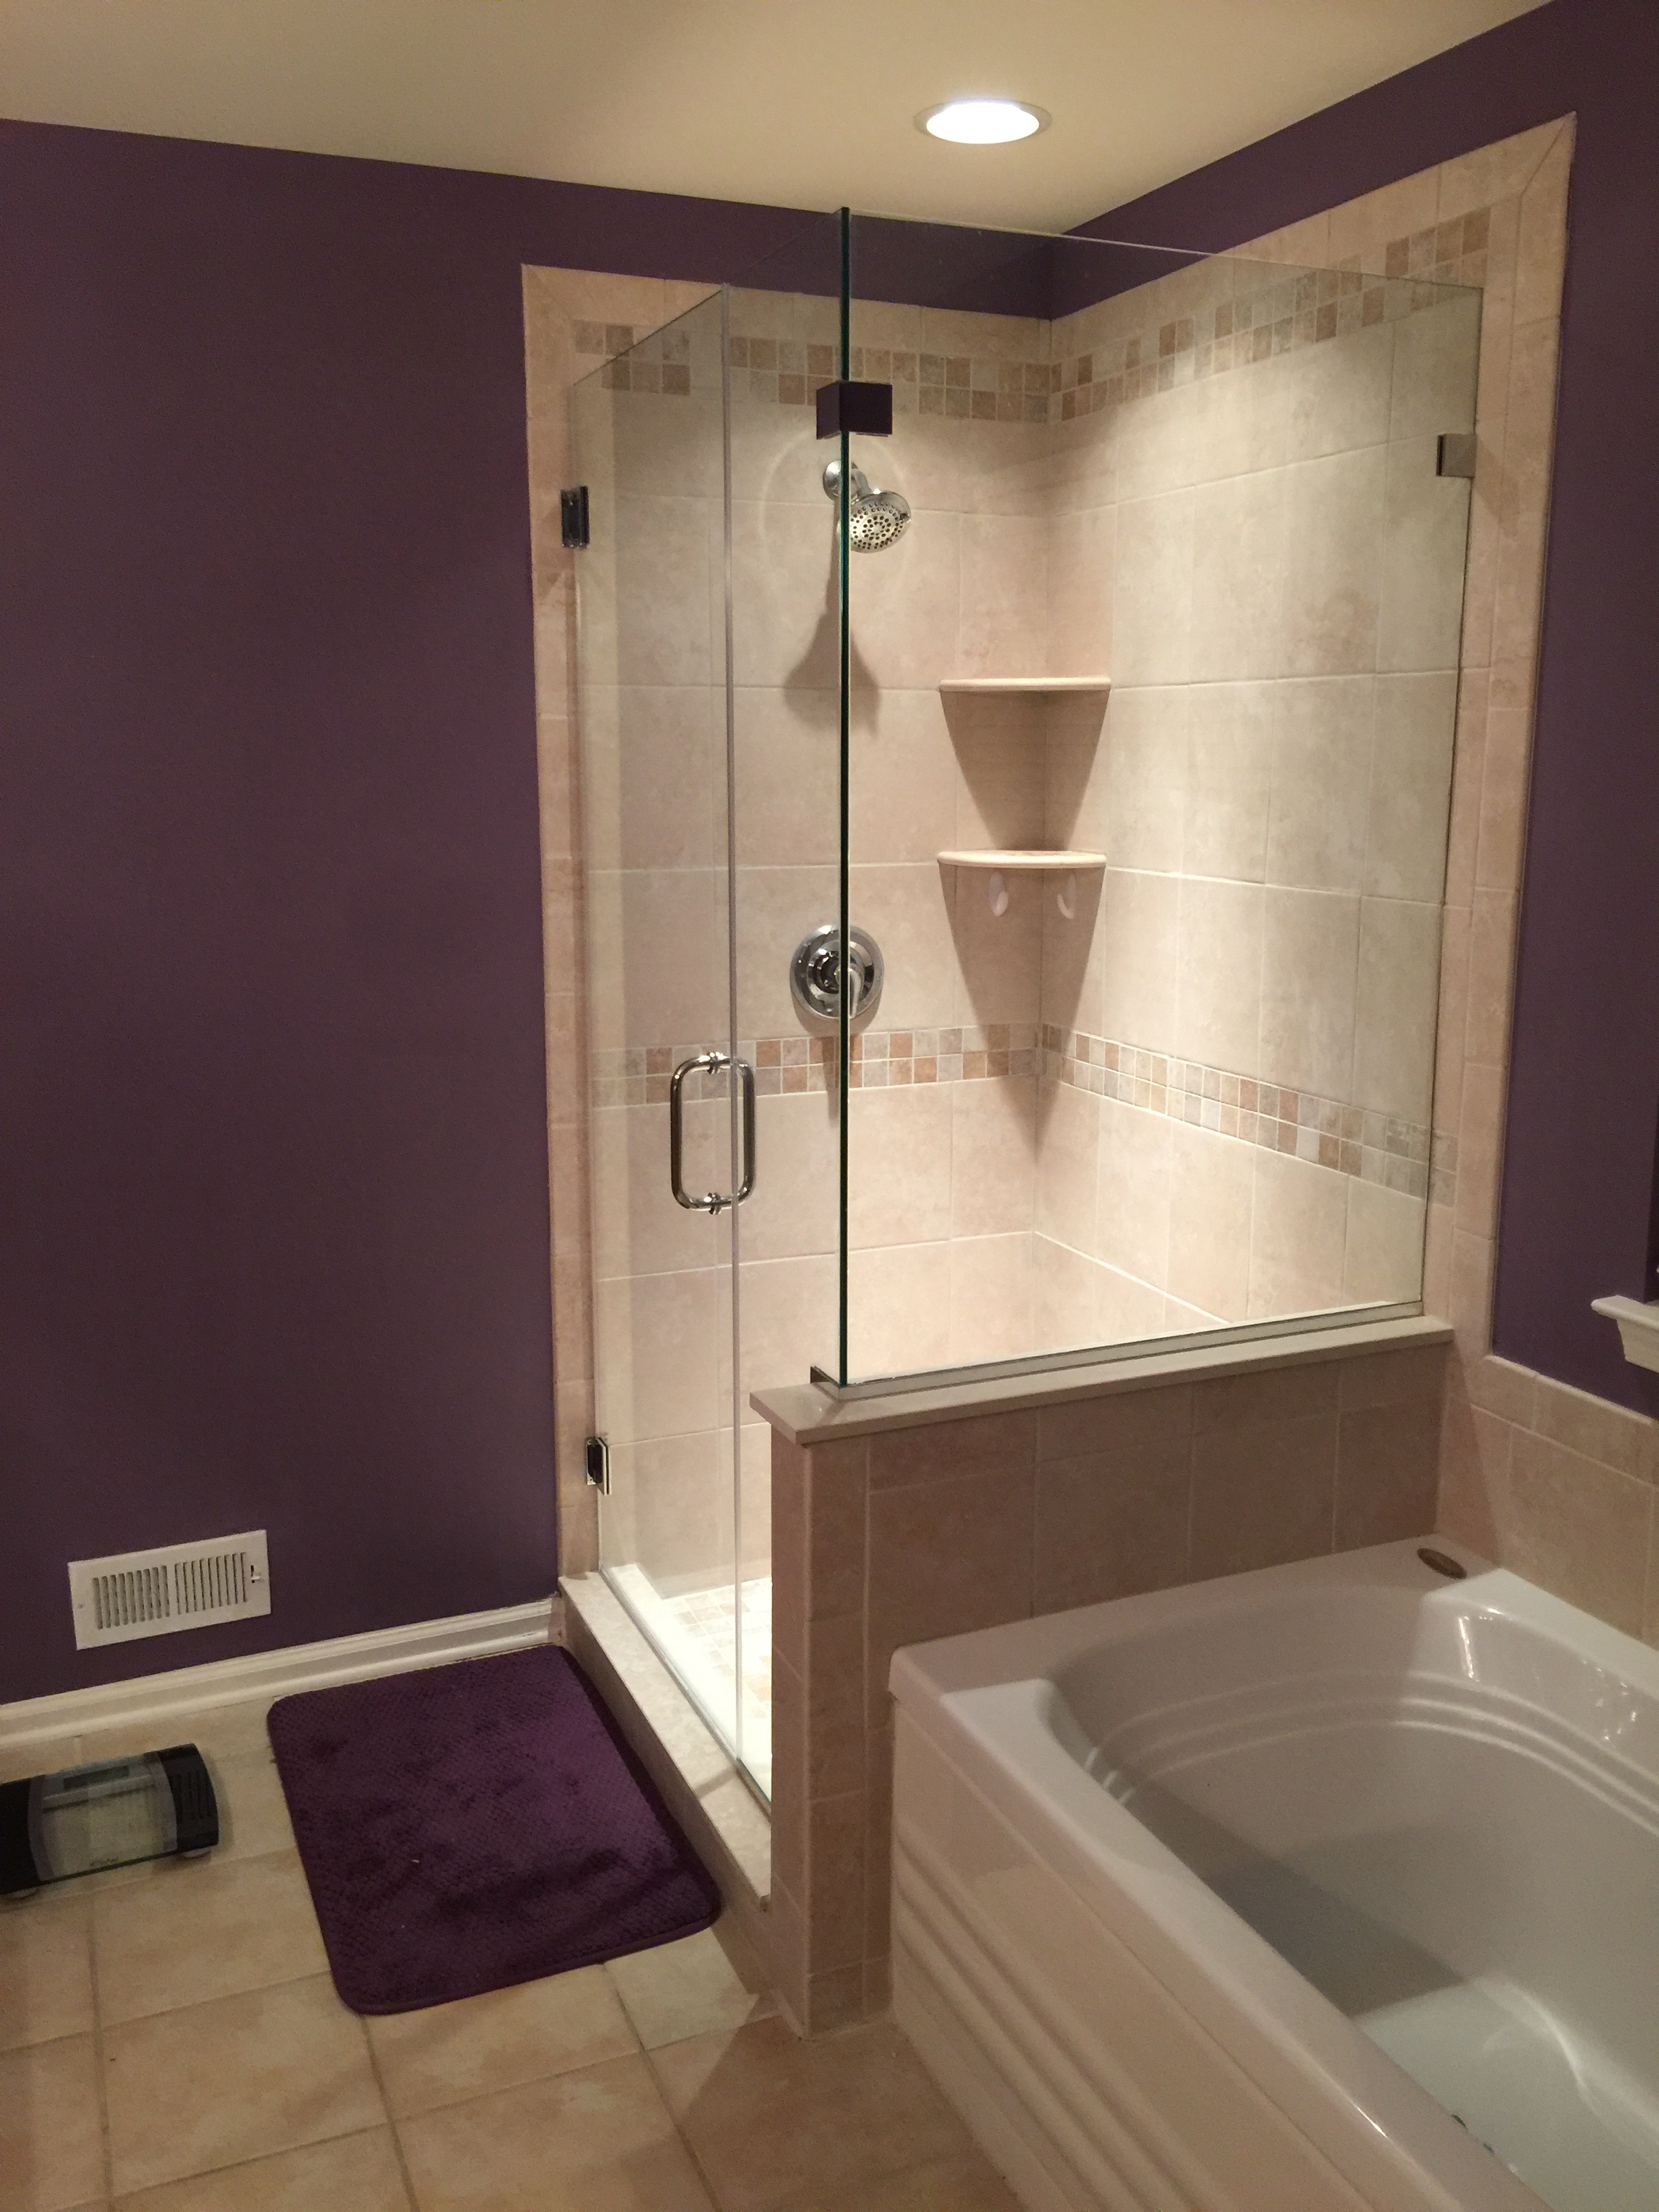 Bathroom Remodel In Mantua Located In South Jersey A Master Builders Remodeling A Master